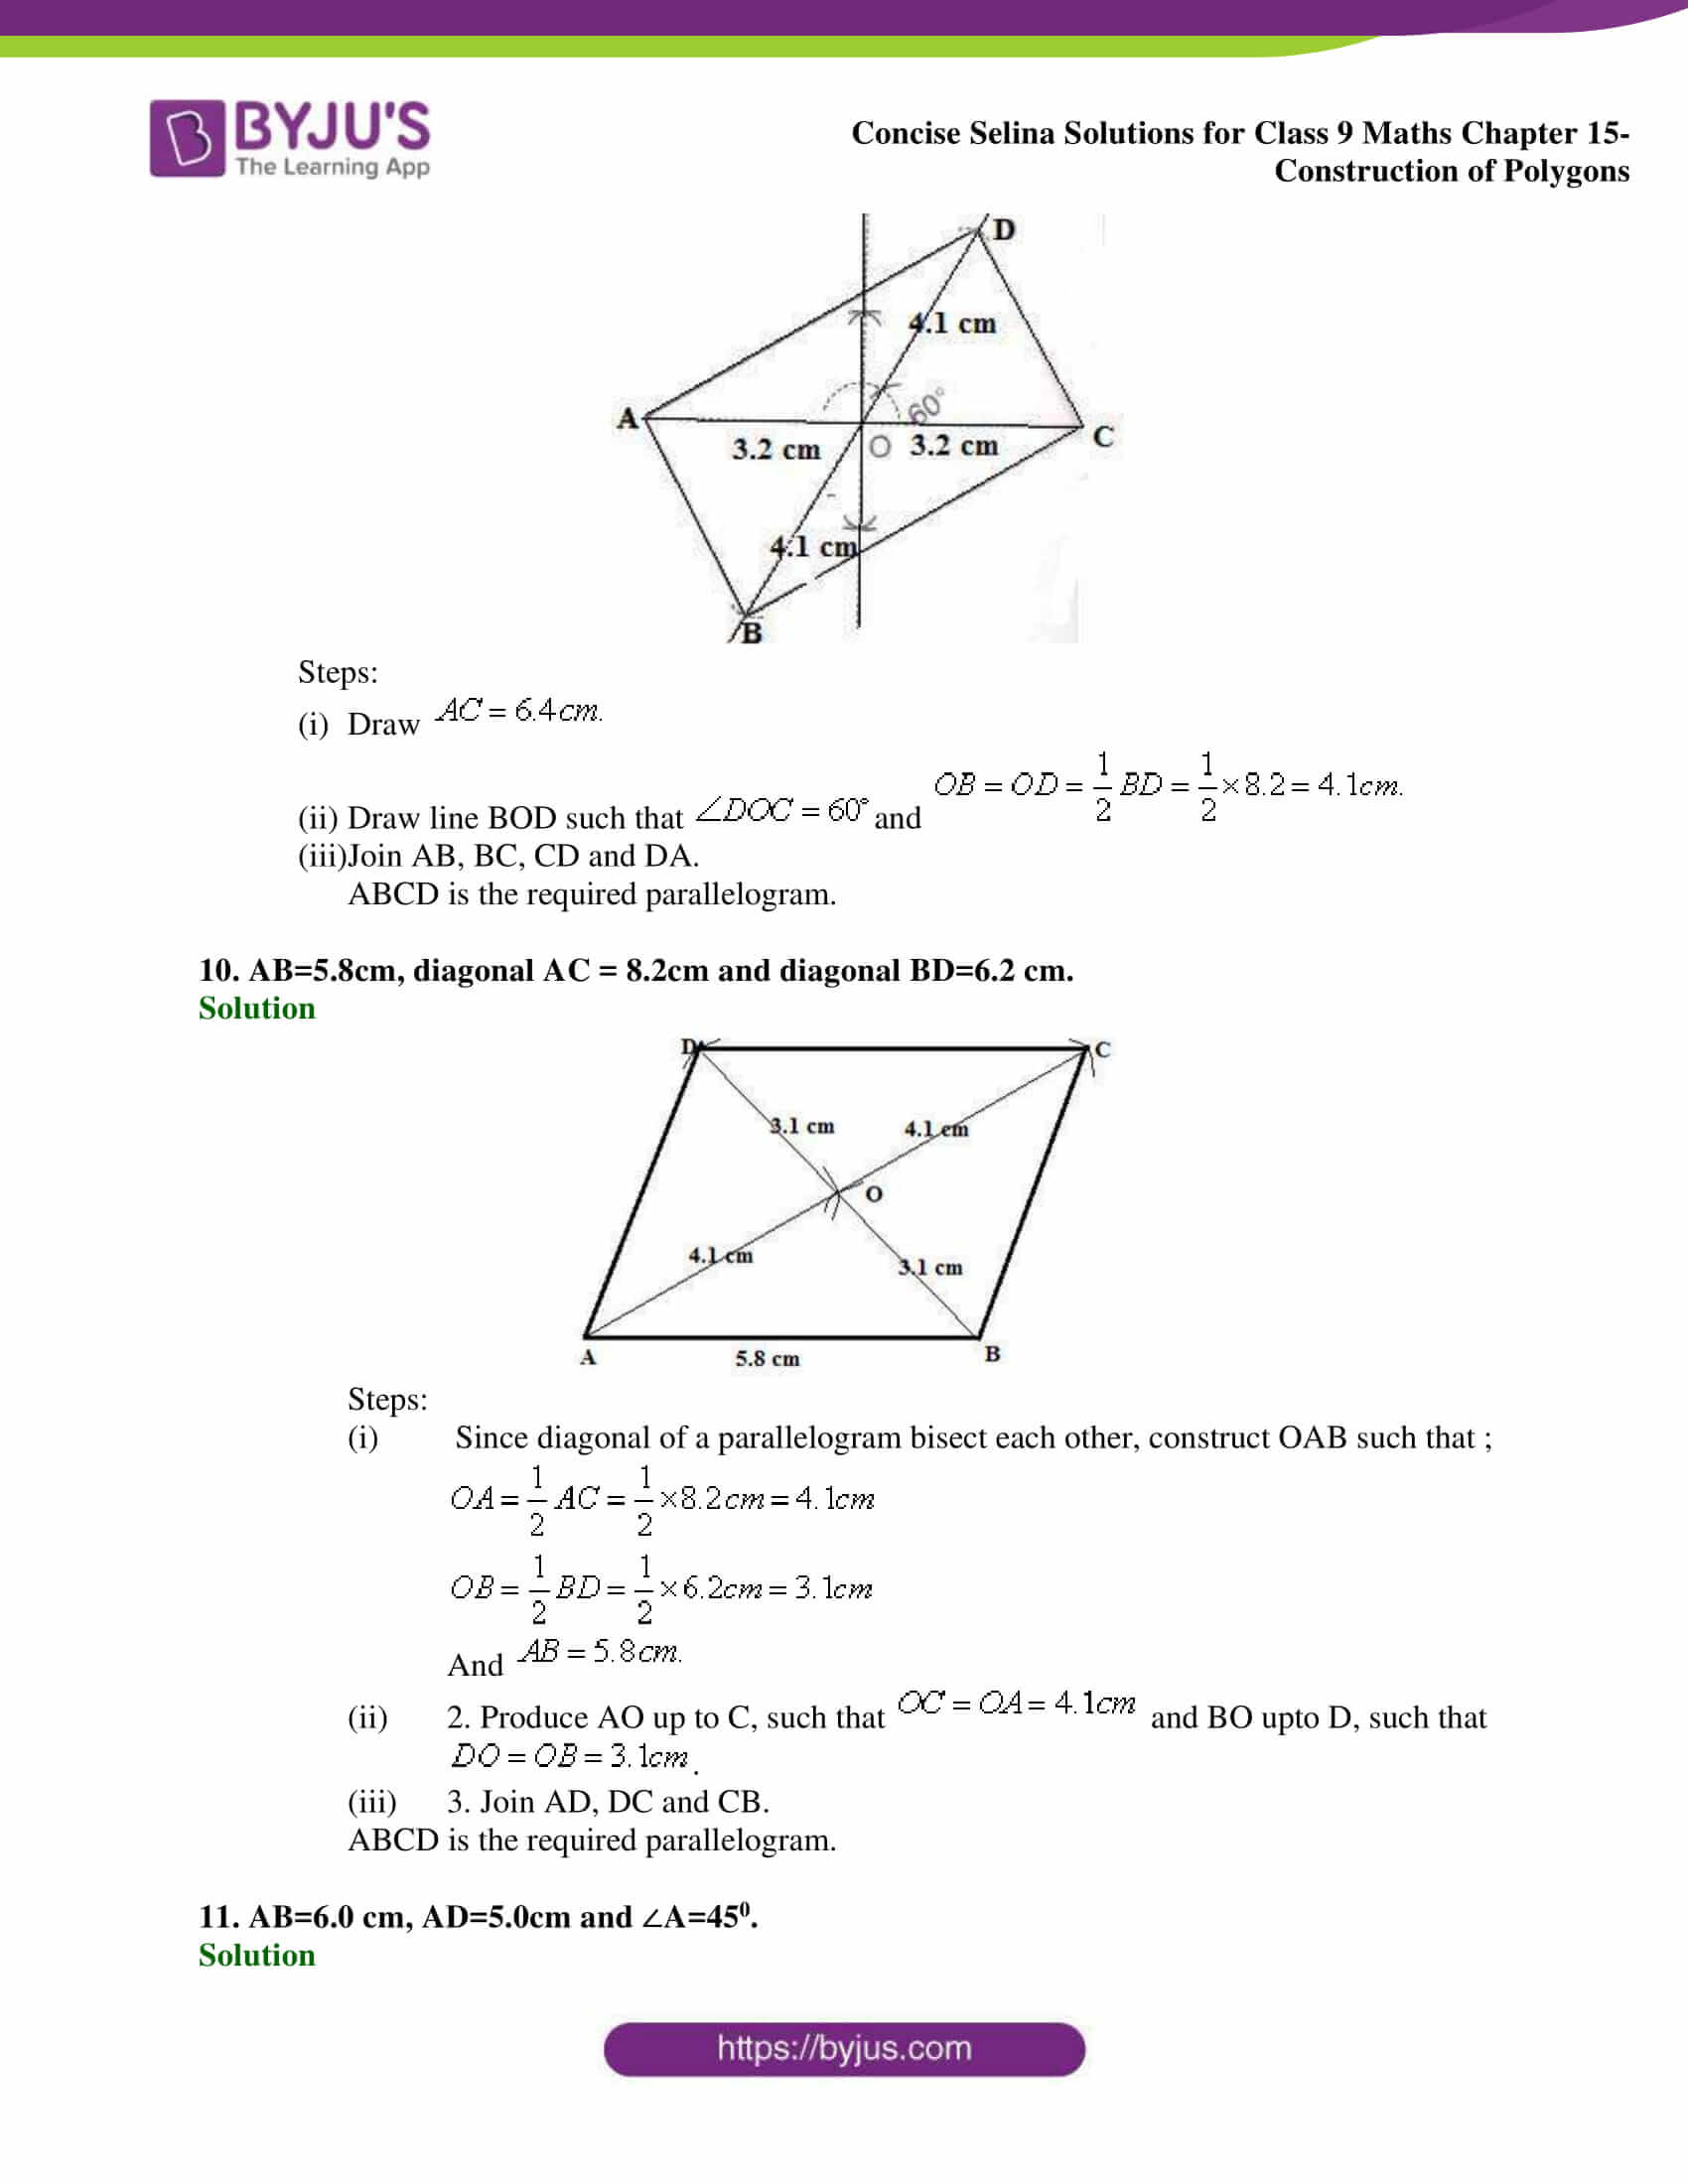 selina Solutions for Class 9 Maths Chapter 15 part 05